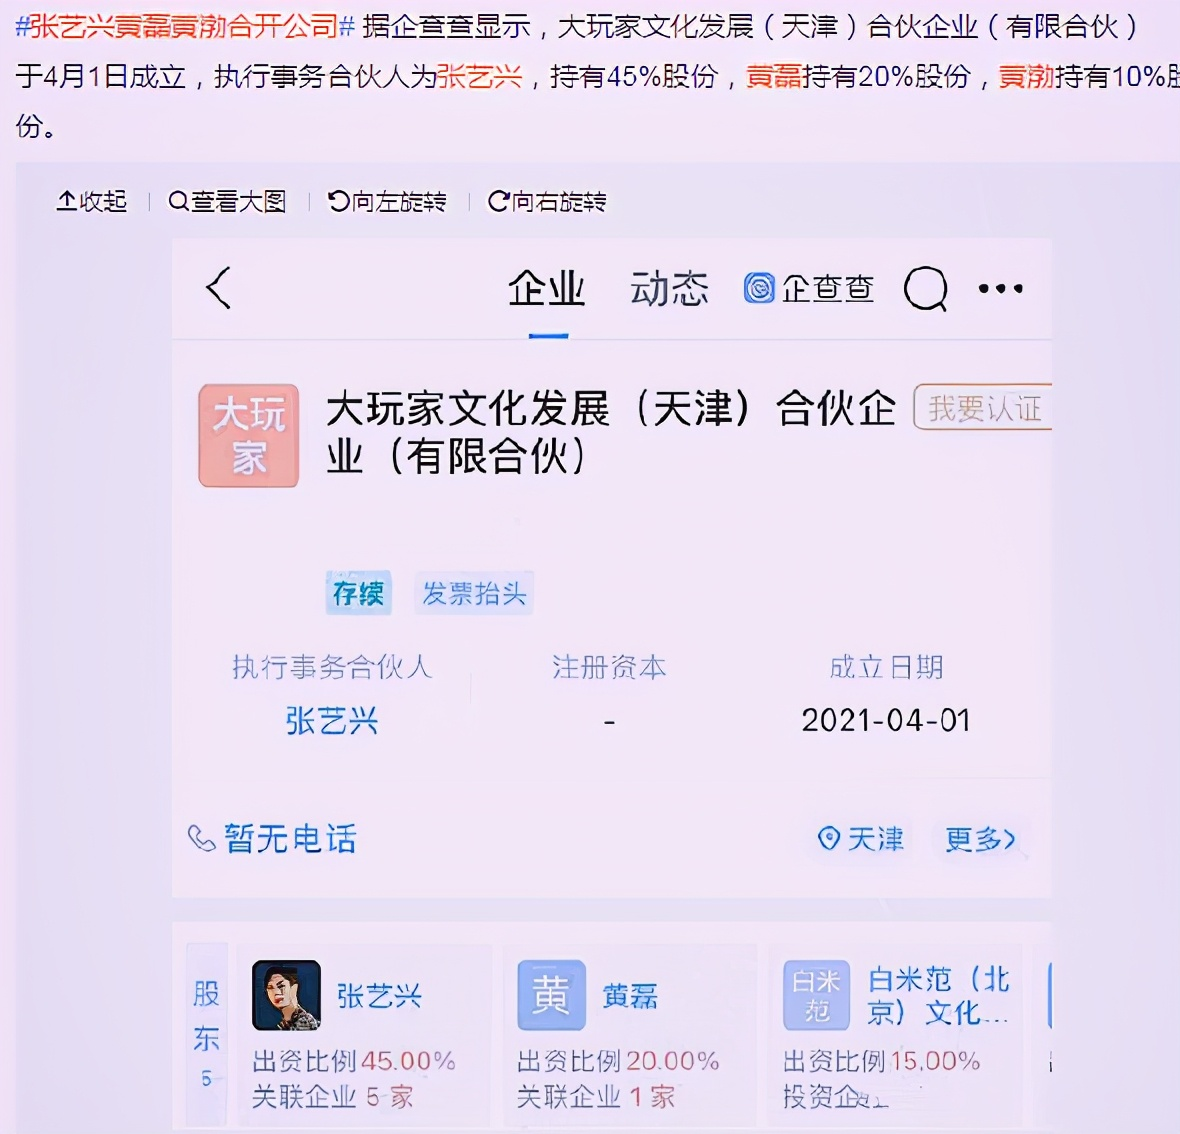 """Zhang Yi promotes yellow Lei Huang Bo to open a firm together, replace Luo Zhixiang to become """" the limit 3 essence """""""